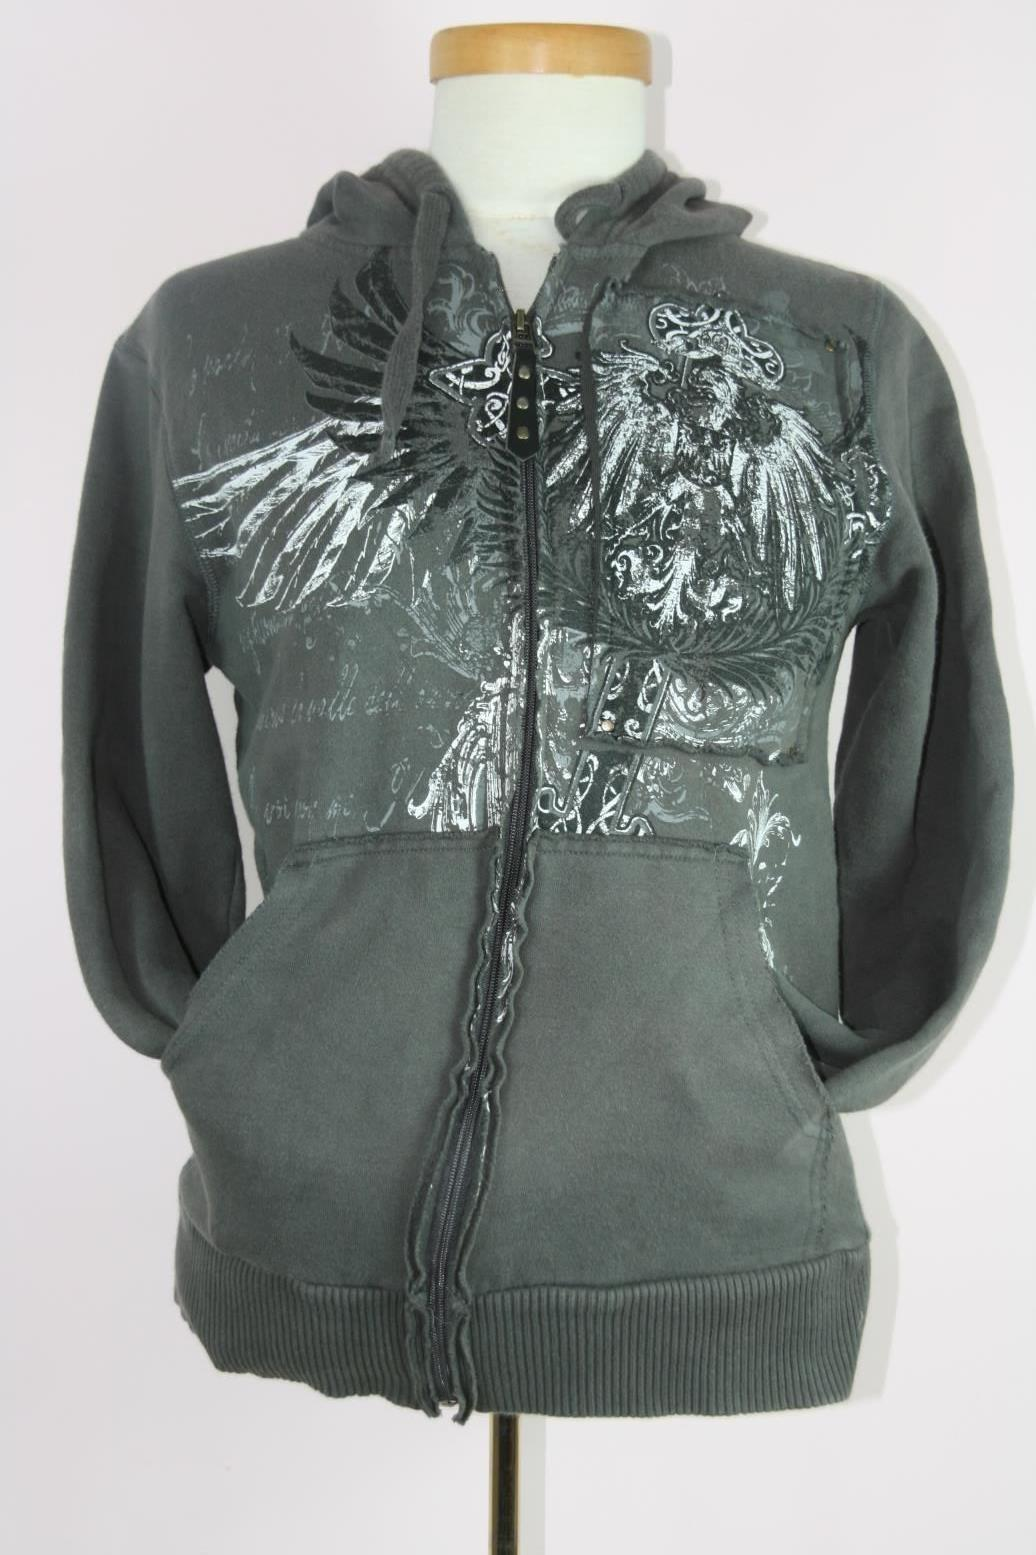 Destruction Gray Graphic Hoodie Zippered Sz Small image 4